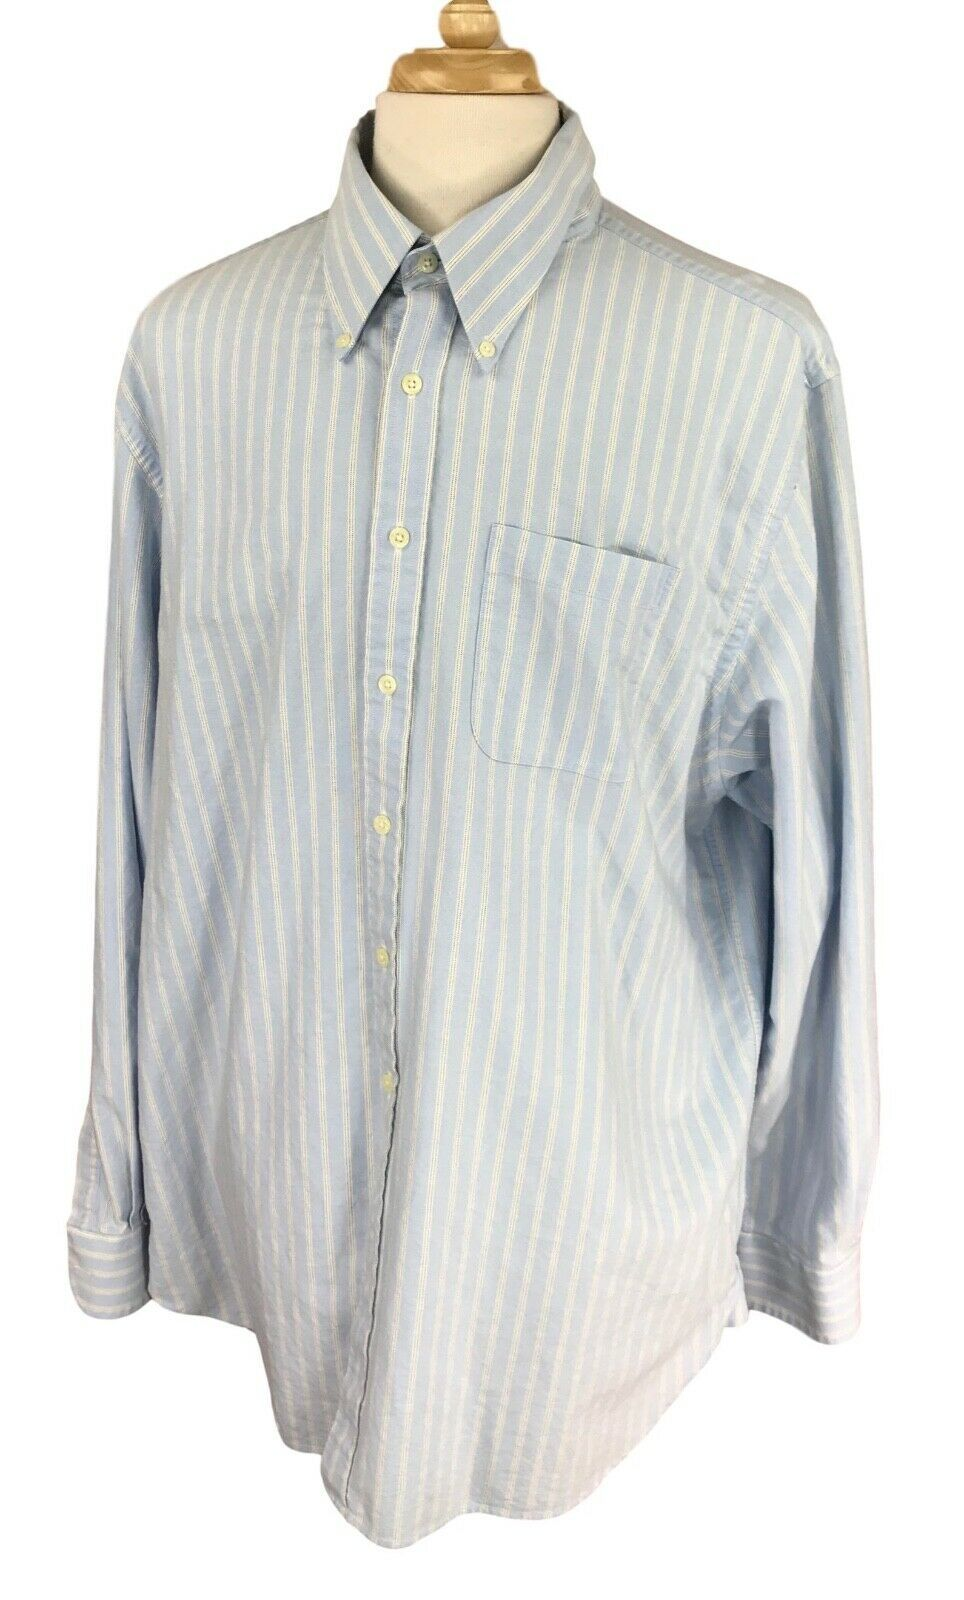 Charles Tyrwhitt Men's Button Down Long Sleeve Blue Stripe Oxford Shirt XXL